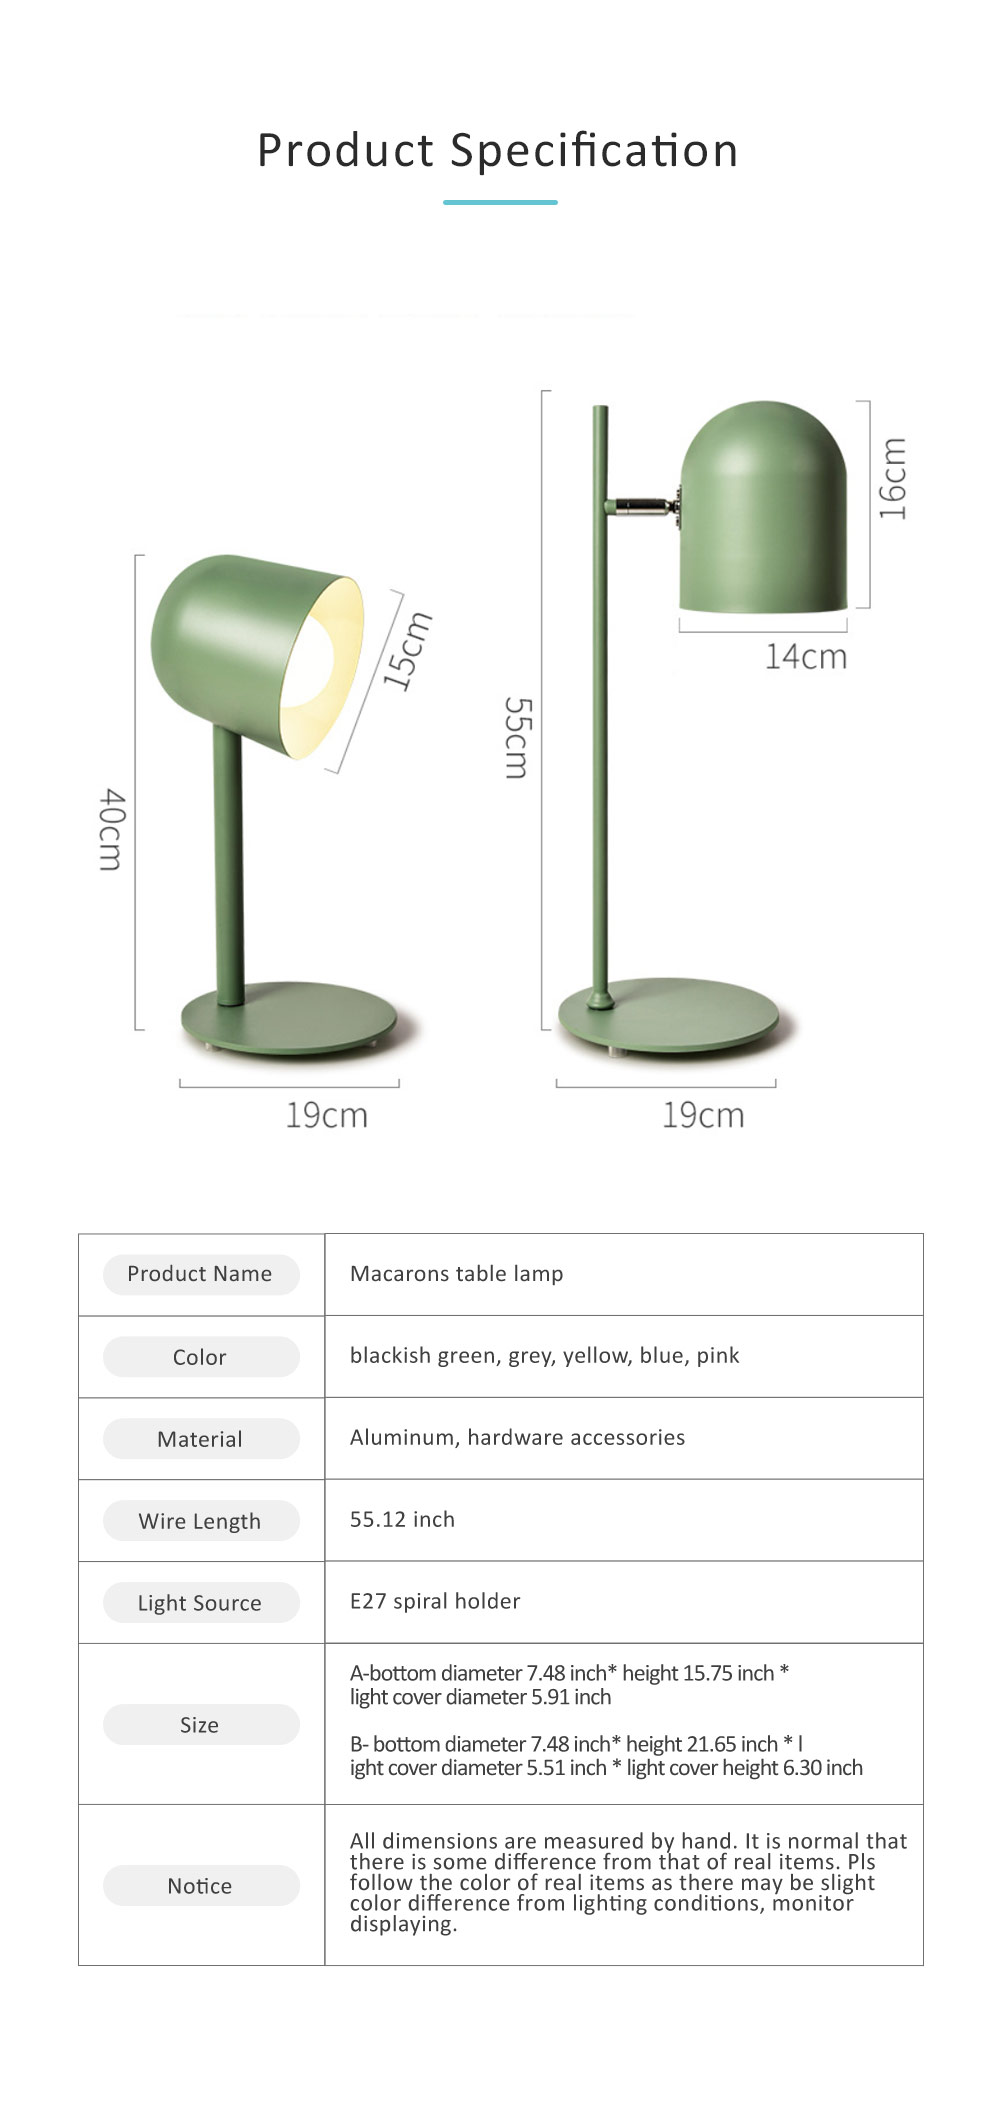 LED Table Lamp for Living Room, Nordic Style Table Lamp for Bedroom Office Eye Protection LED Table Light 8